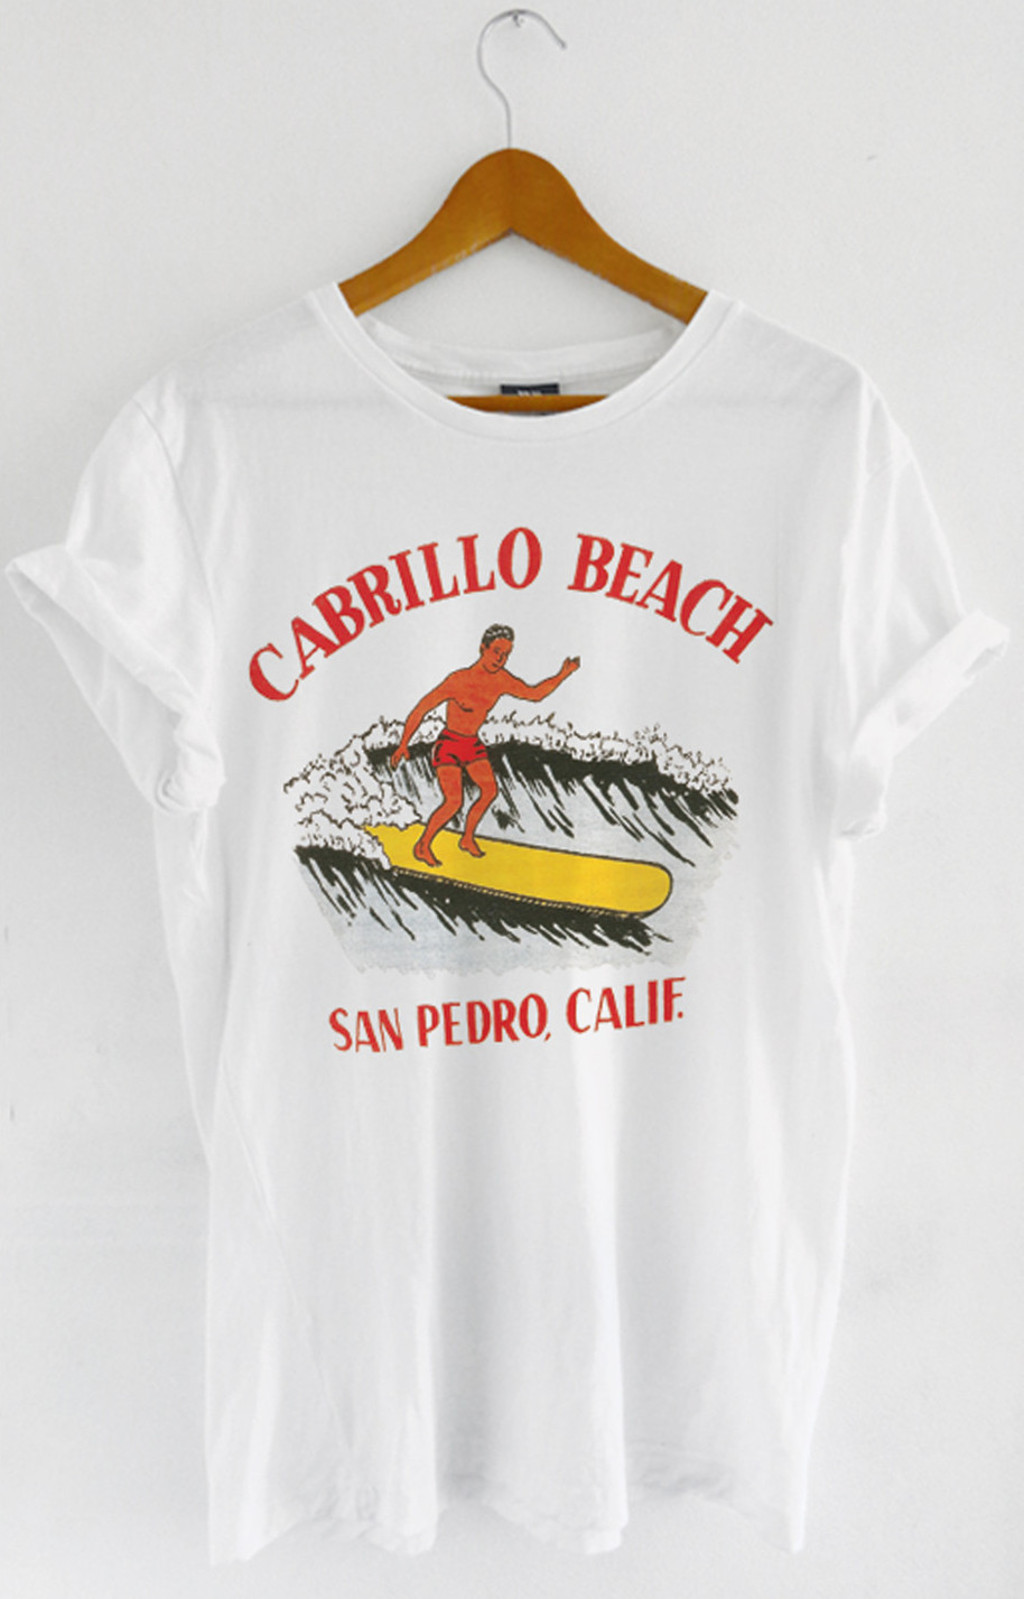 T-shirt Cabrillo Beach